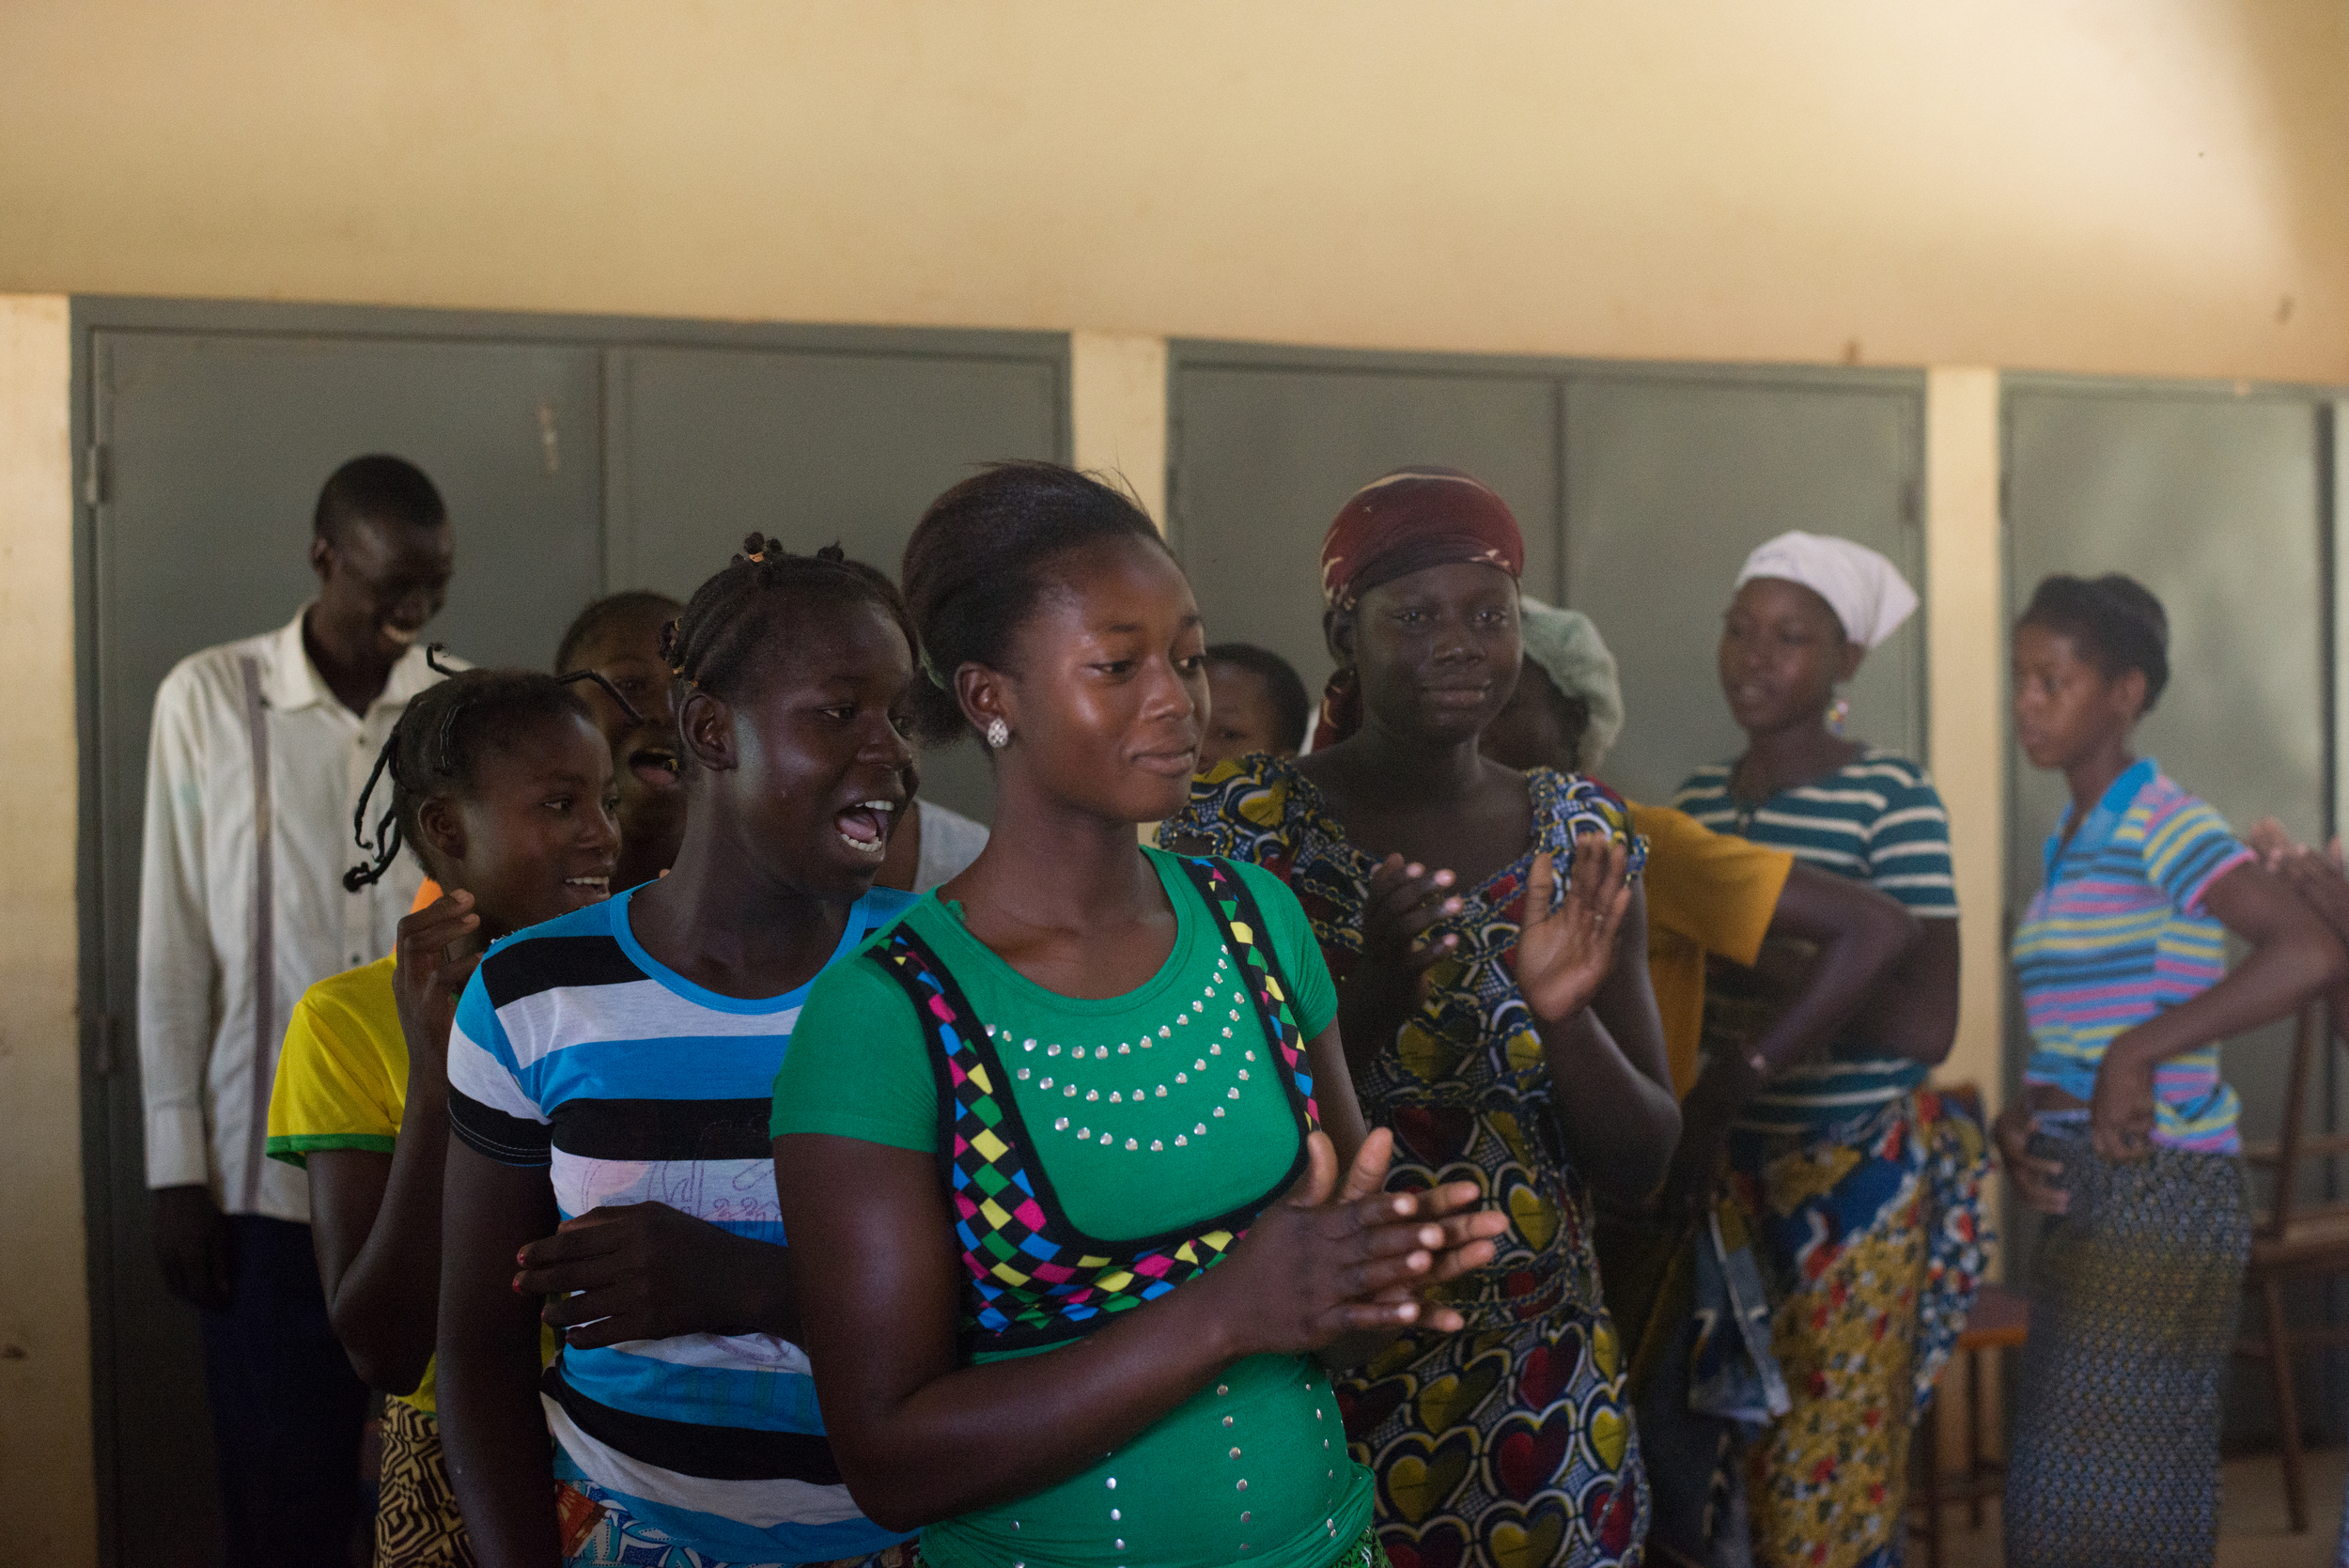 The girls dance at the the Center's opening mass